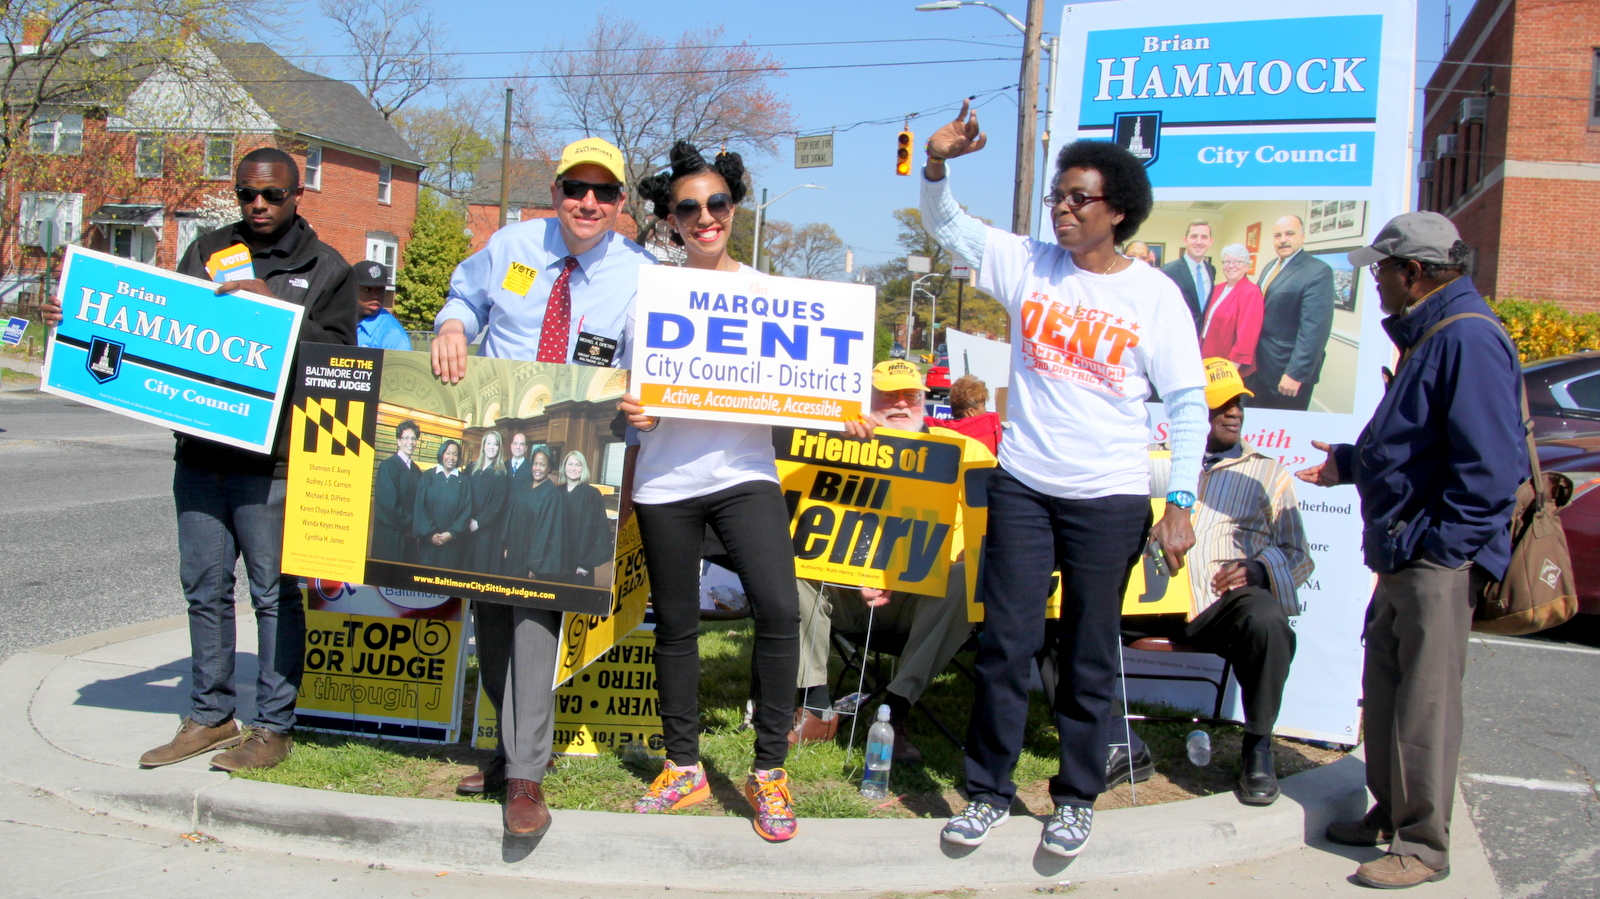 Circuit Court Judge Michael DiPietro campaigning outside one of Baltimore's early voting sites last week. (Fern Shen)